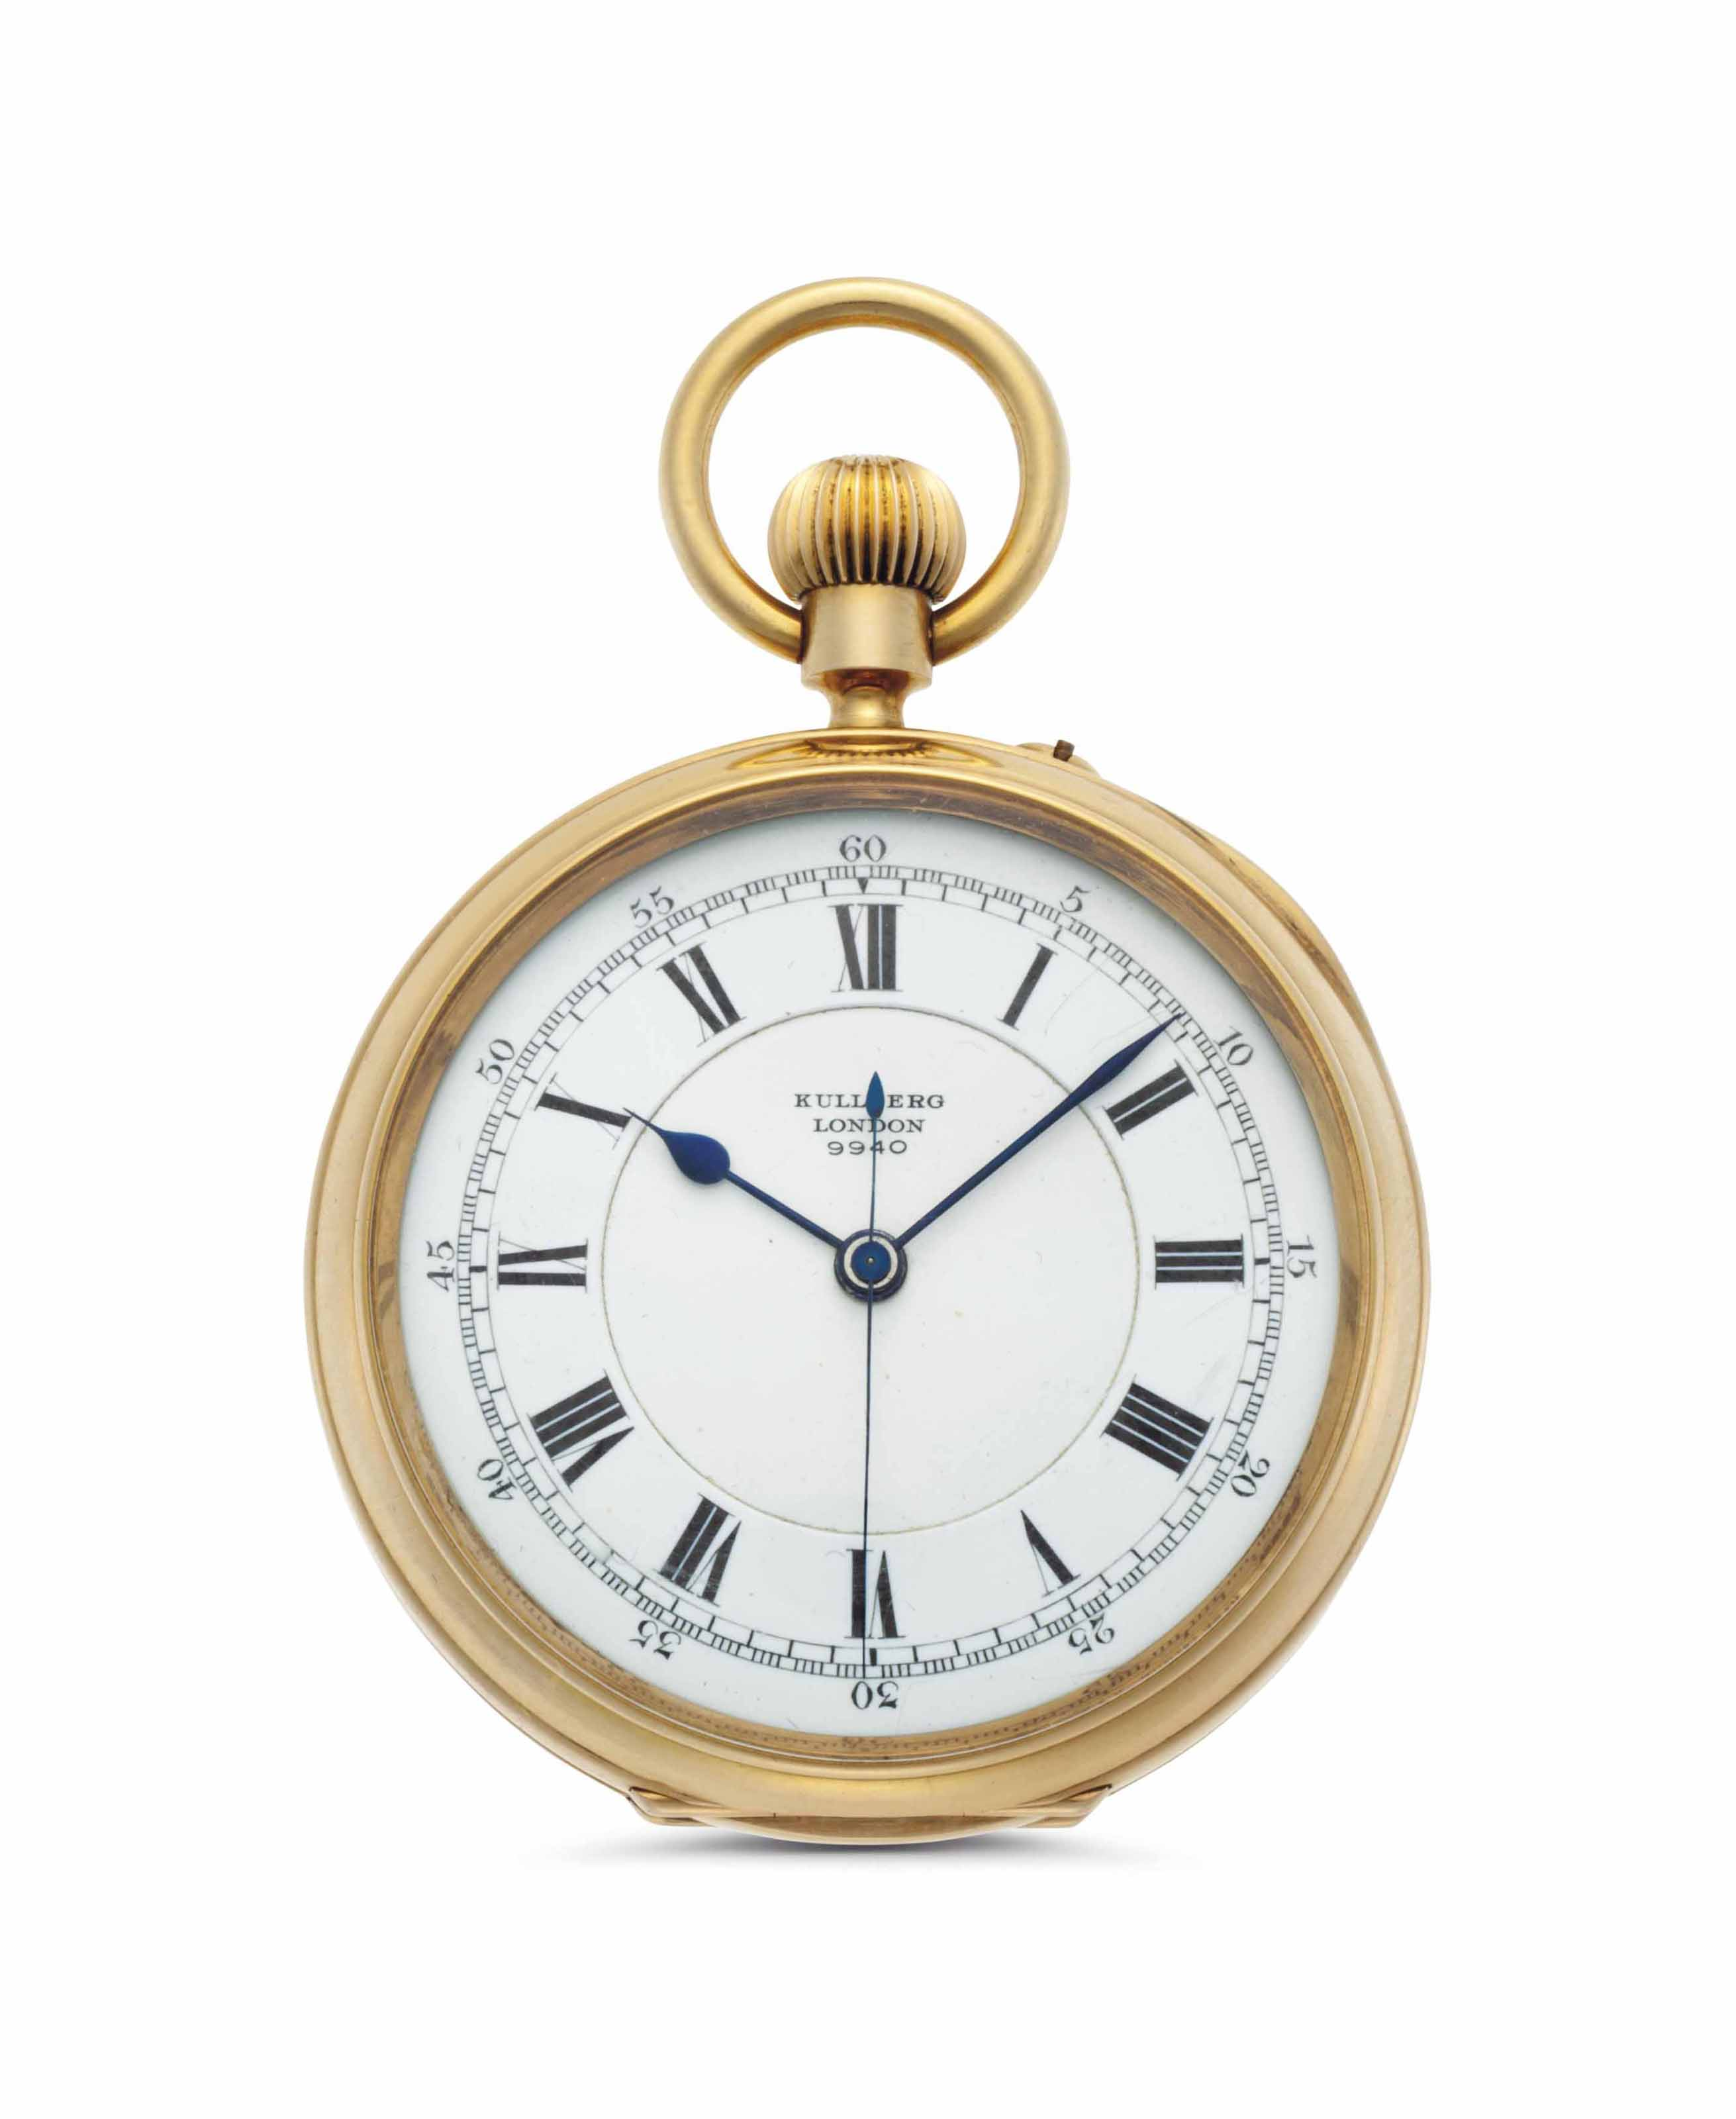 Victor Kullberg. An 18k Gold Openface Keyless Lever Pocket Watch with Center Seconds